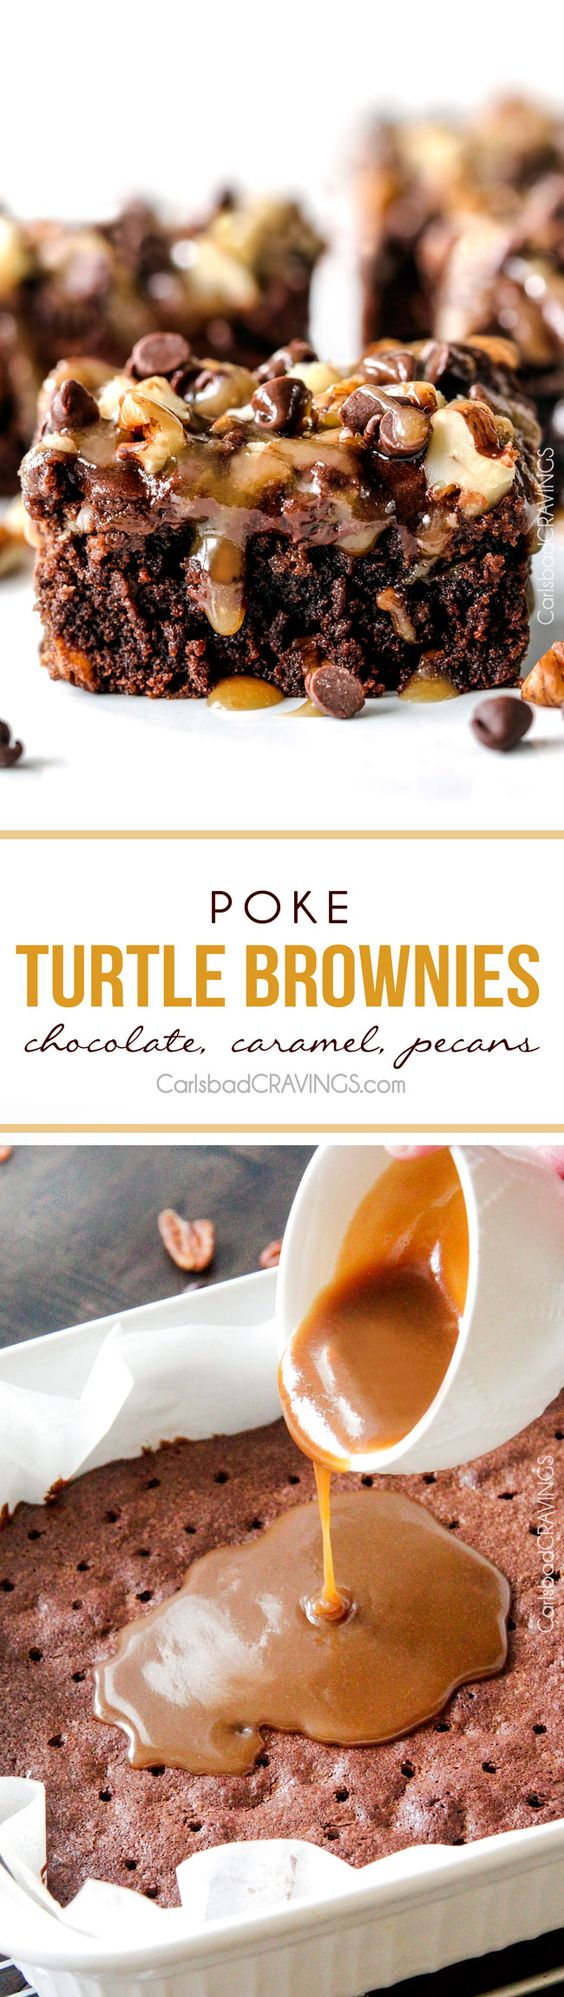 Turtle brownies, Turtles and Chocolate frosting on Pinterest